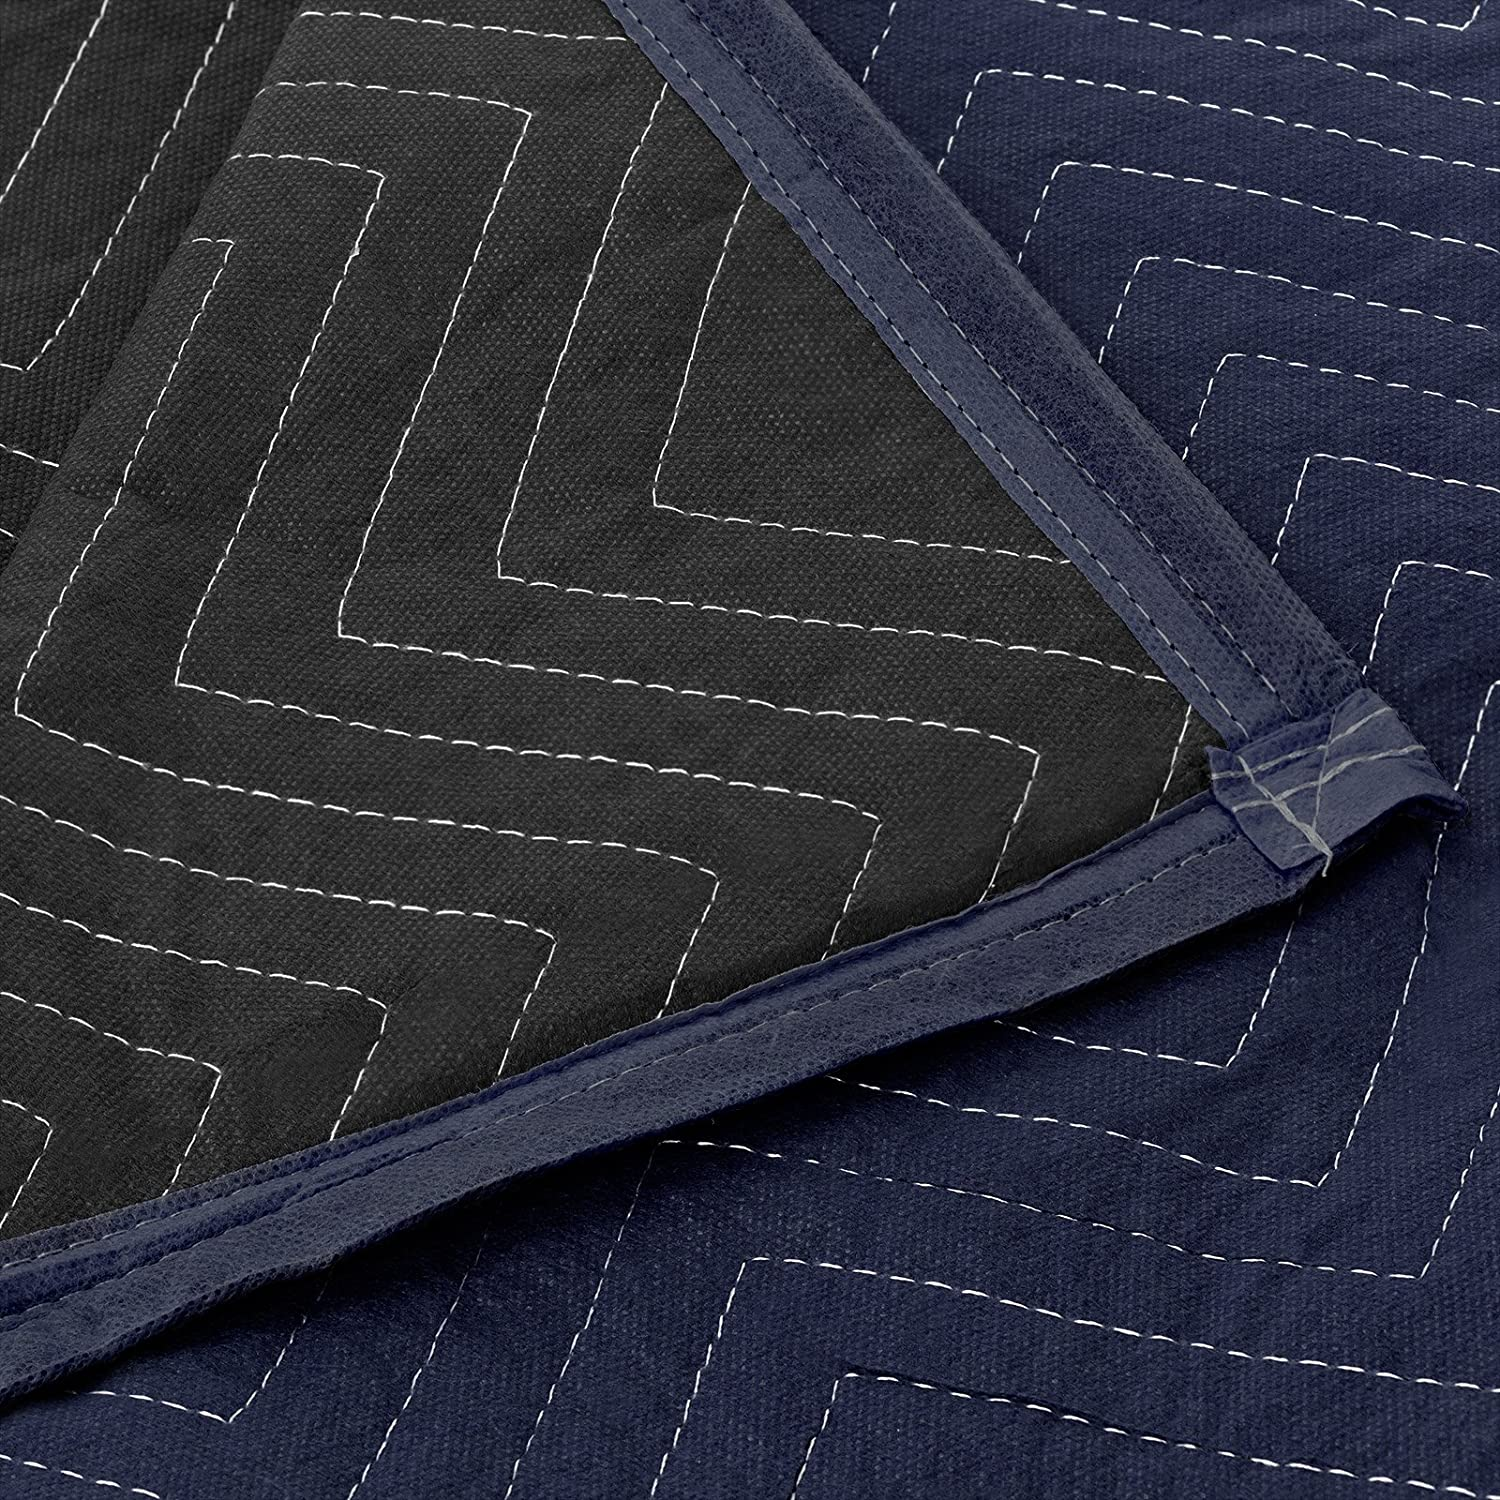 80 x 72 - Professional Quilted Shipping Furniture Pads Navy Blue and Black Sure-Max 8 Moving /& Packing Blankets 35 lb//dz Weight Pro Economy